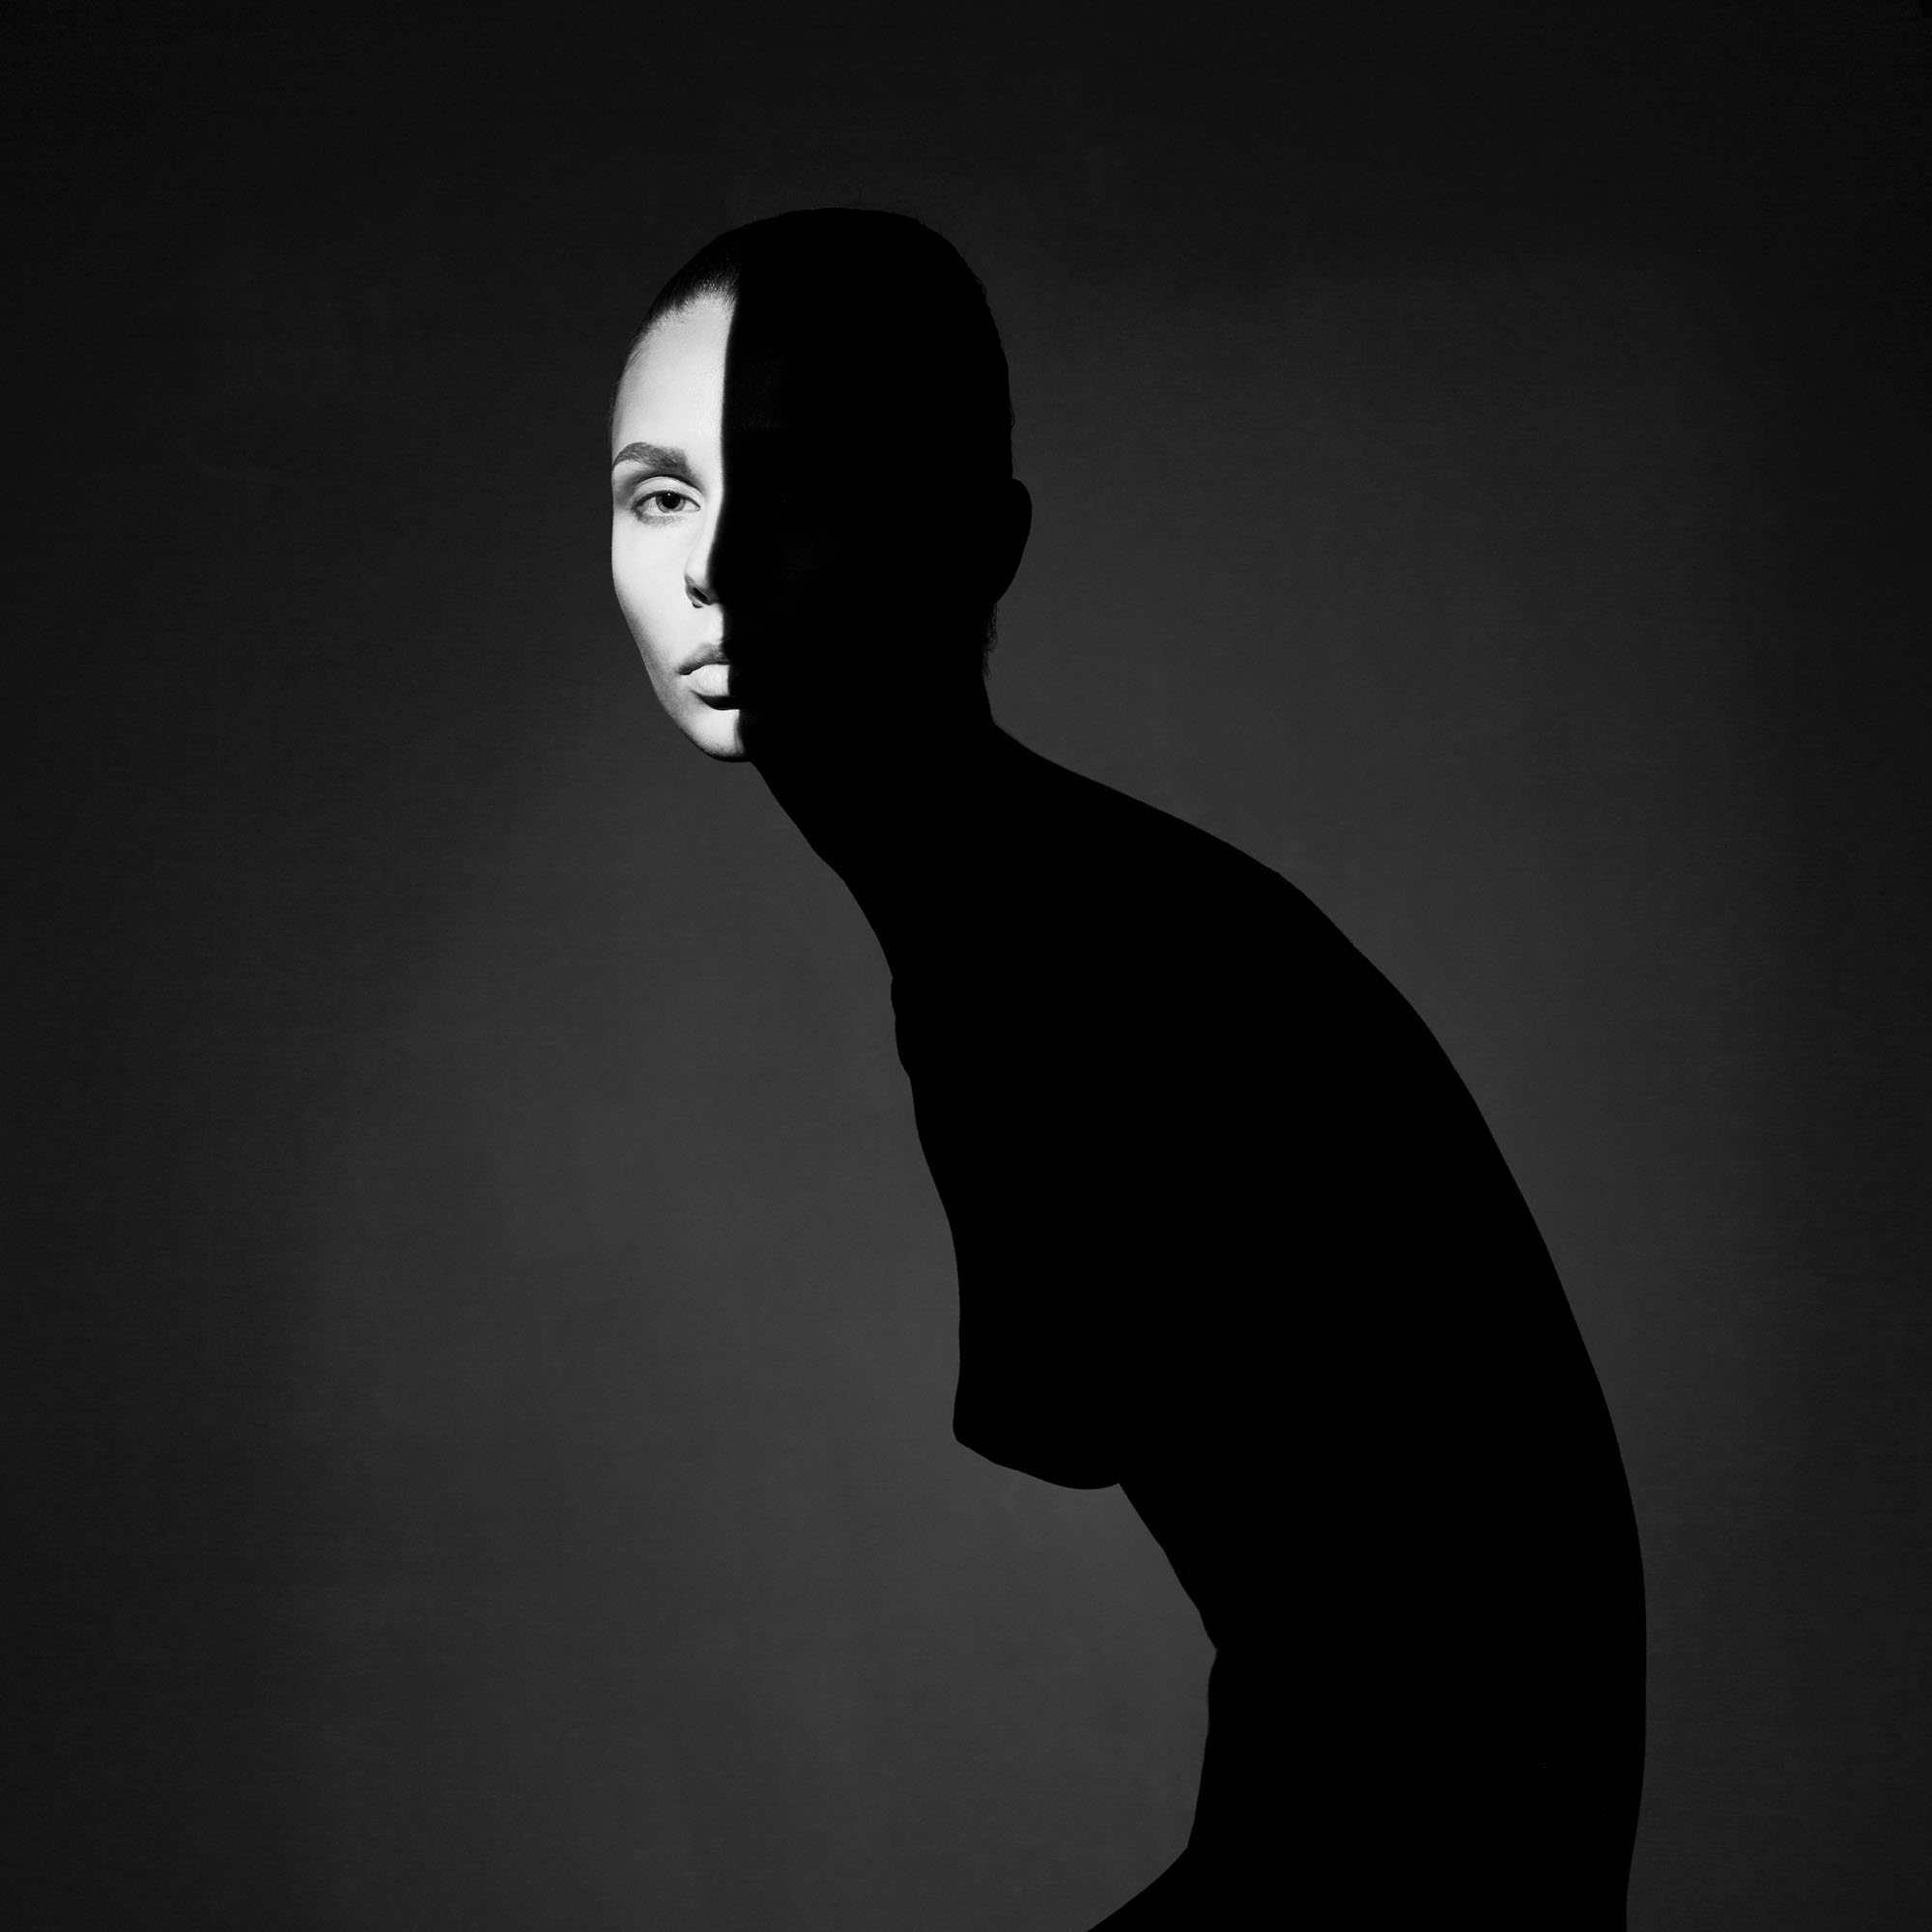 George Mayer, Russia, Category Professional, Portraiture, Sony World Photography Awards